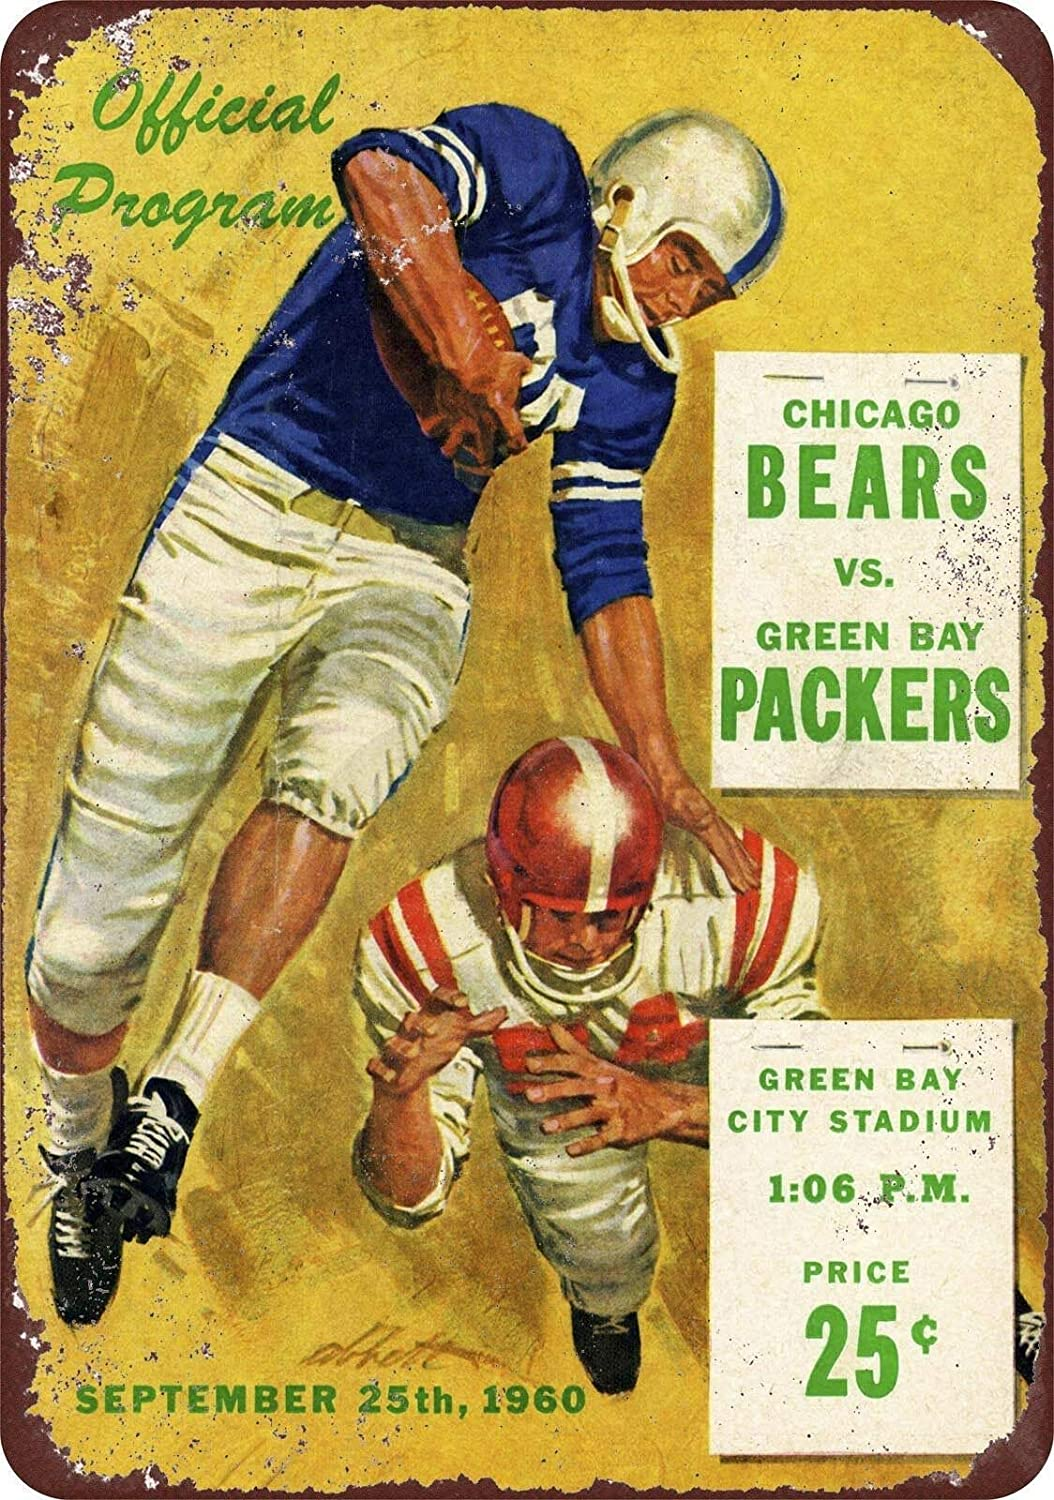 Vintage Retro Collection tin Signs 1960 Green Bay Packers Chicago Bears Wall Decoration Poster Home bar Restaurant Cafe Art Metal Sign 8X12 Inch Tin Sign